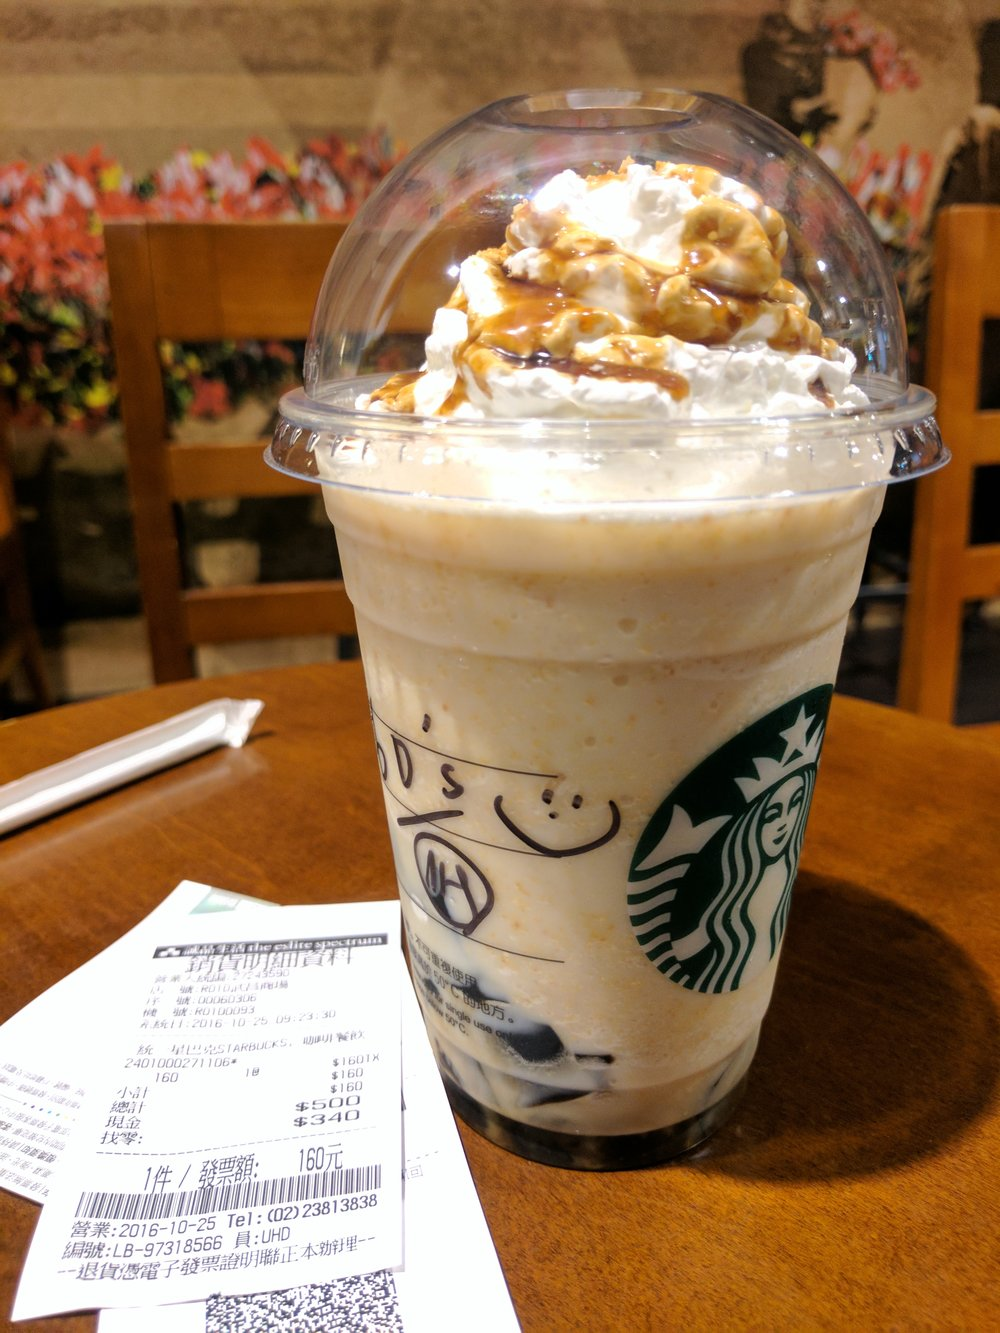 peanut frappuccino with grass jelly! also yum!